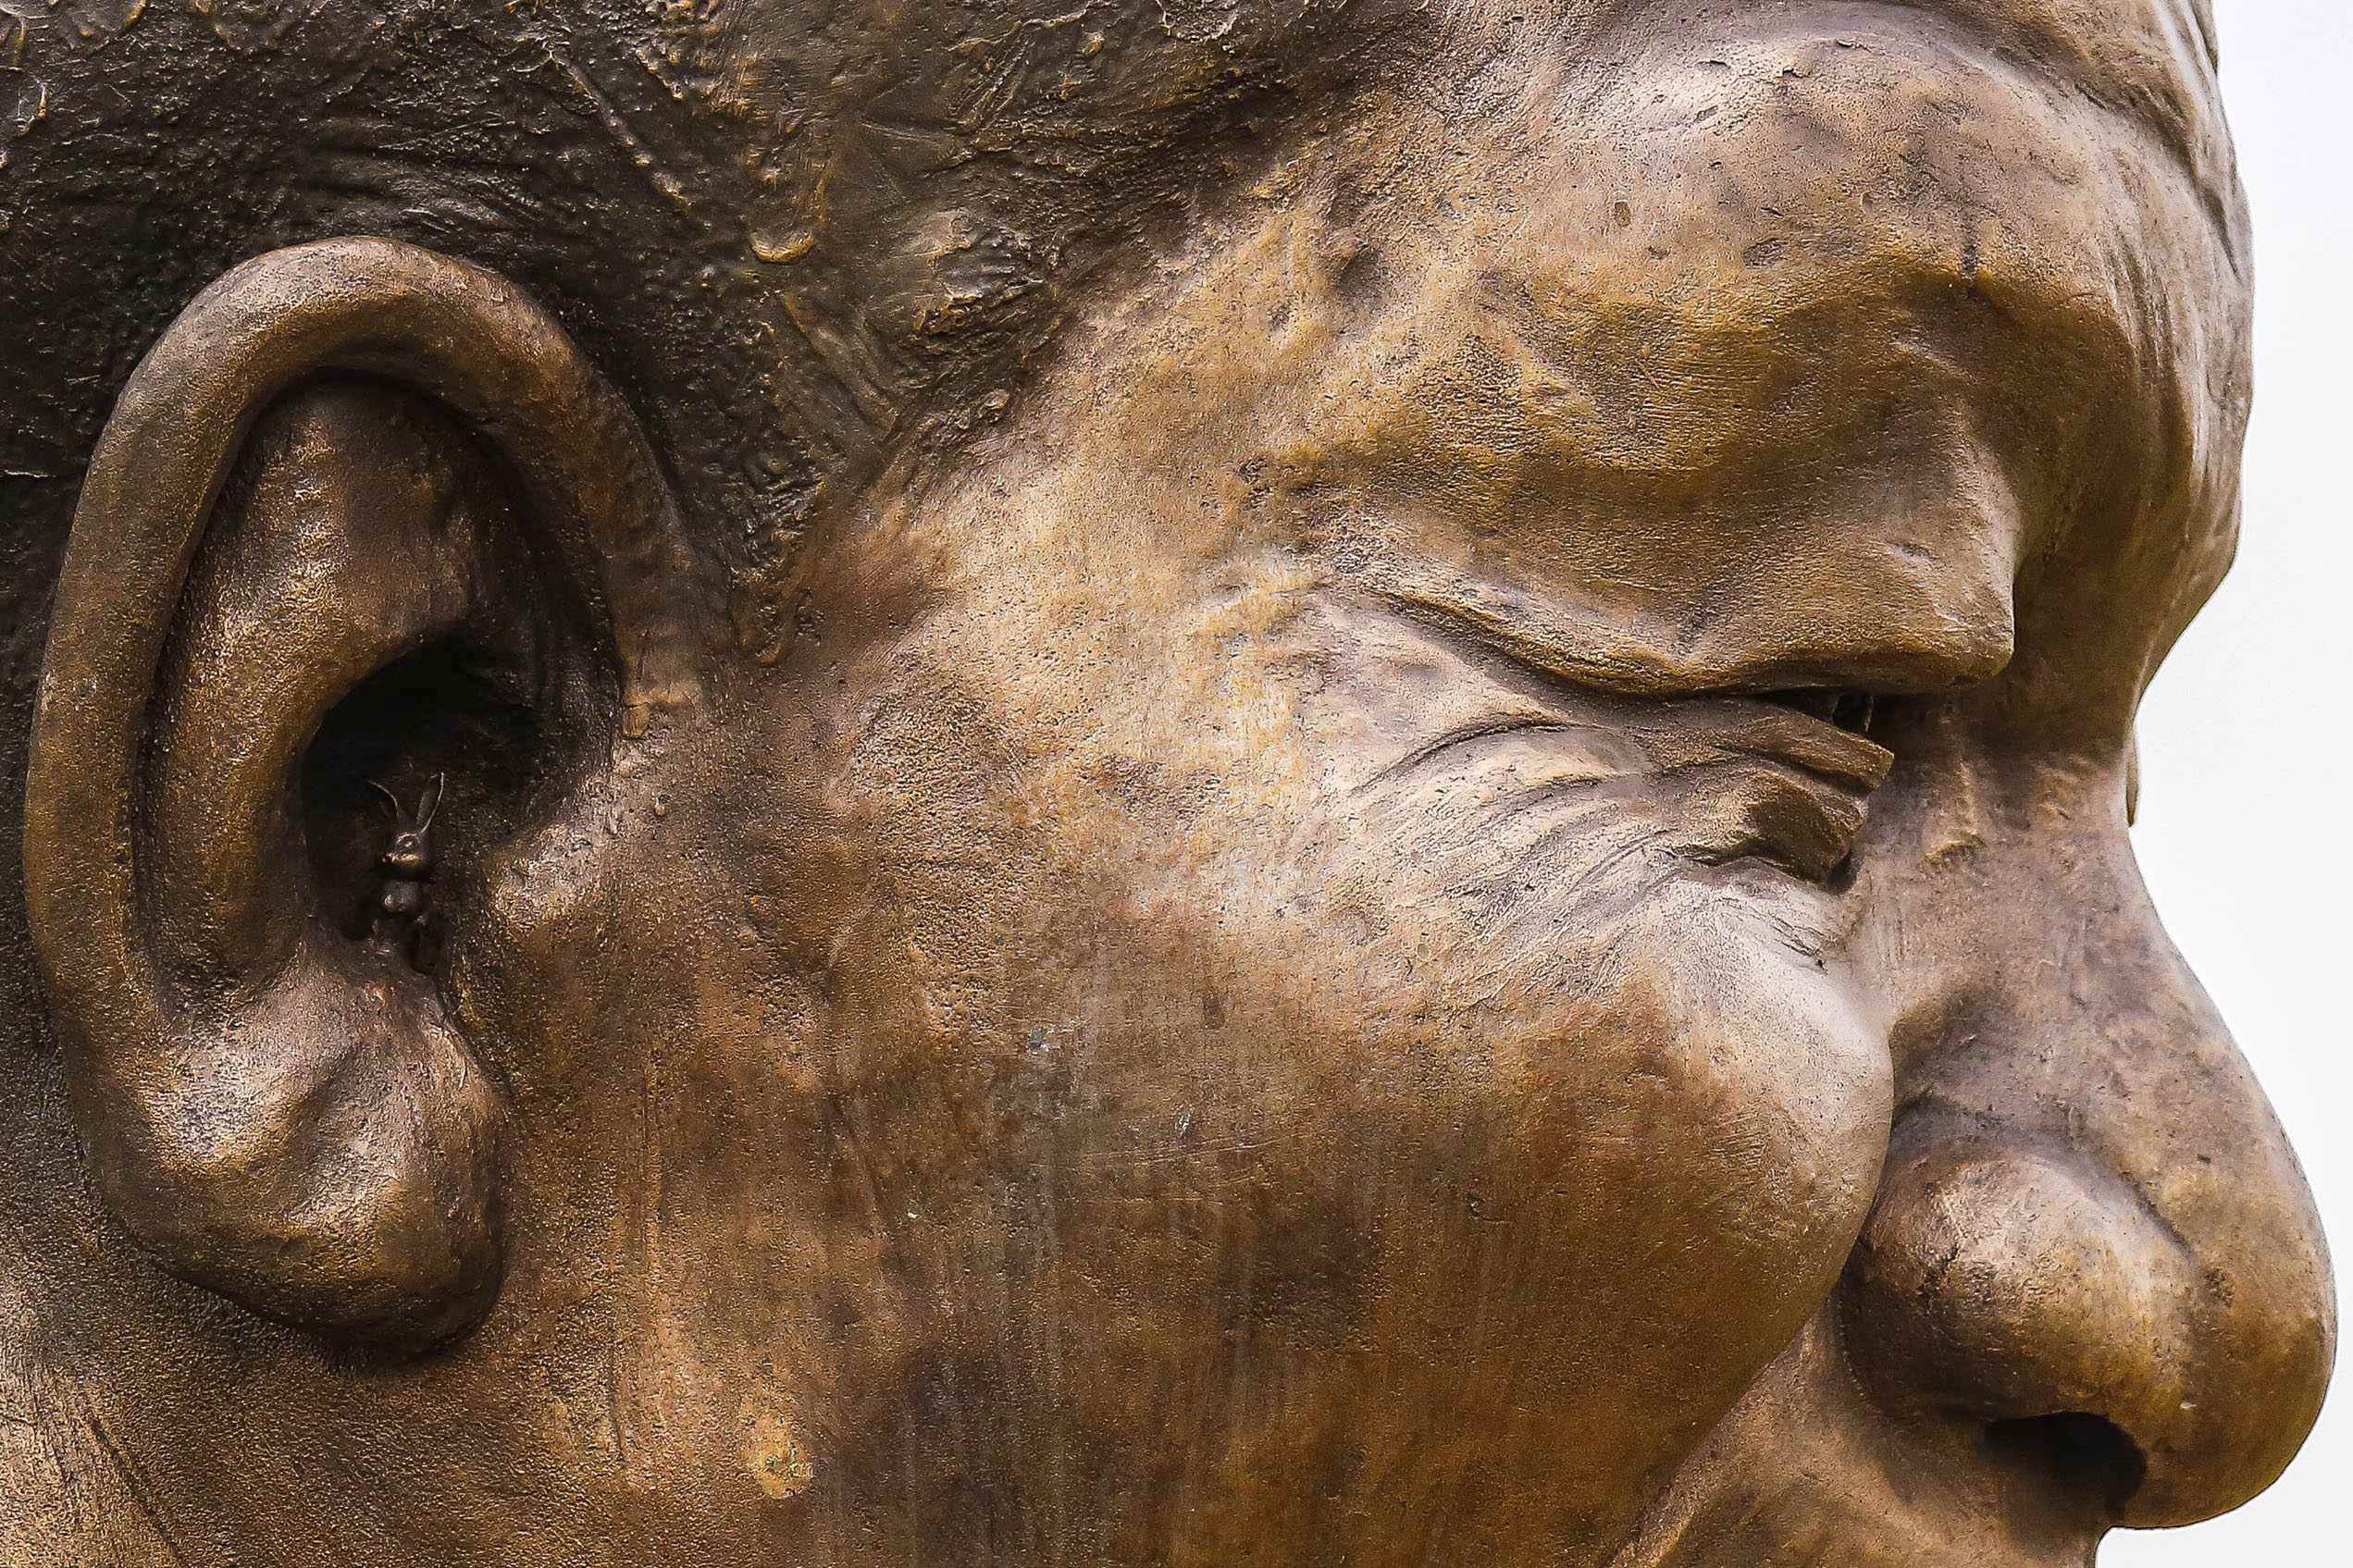 Why is there a tiny bunny in Nelson Mandela's ear?